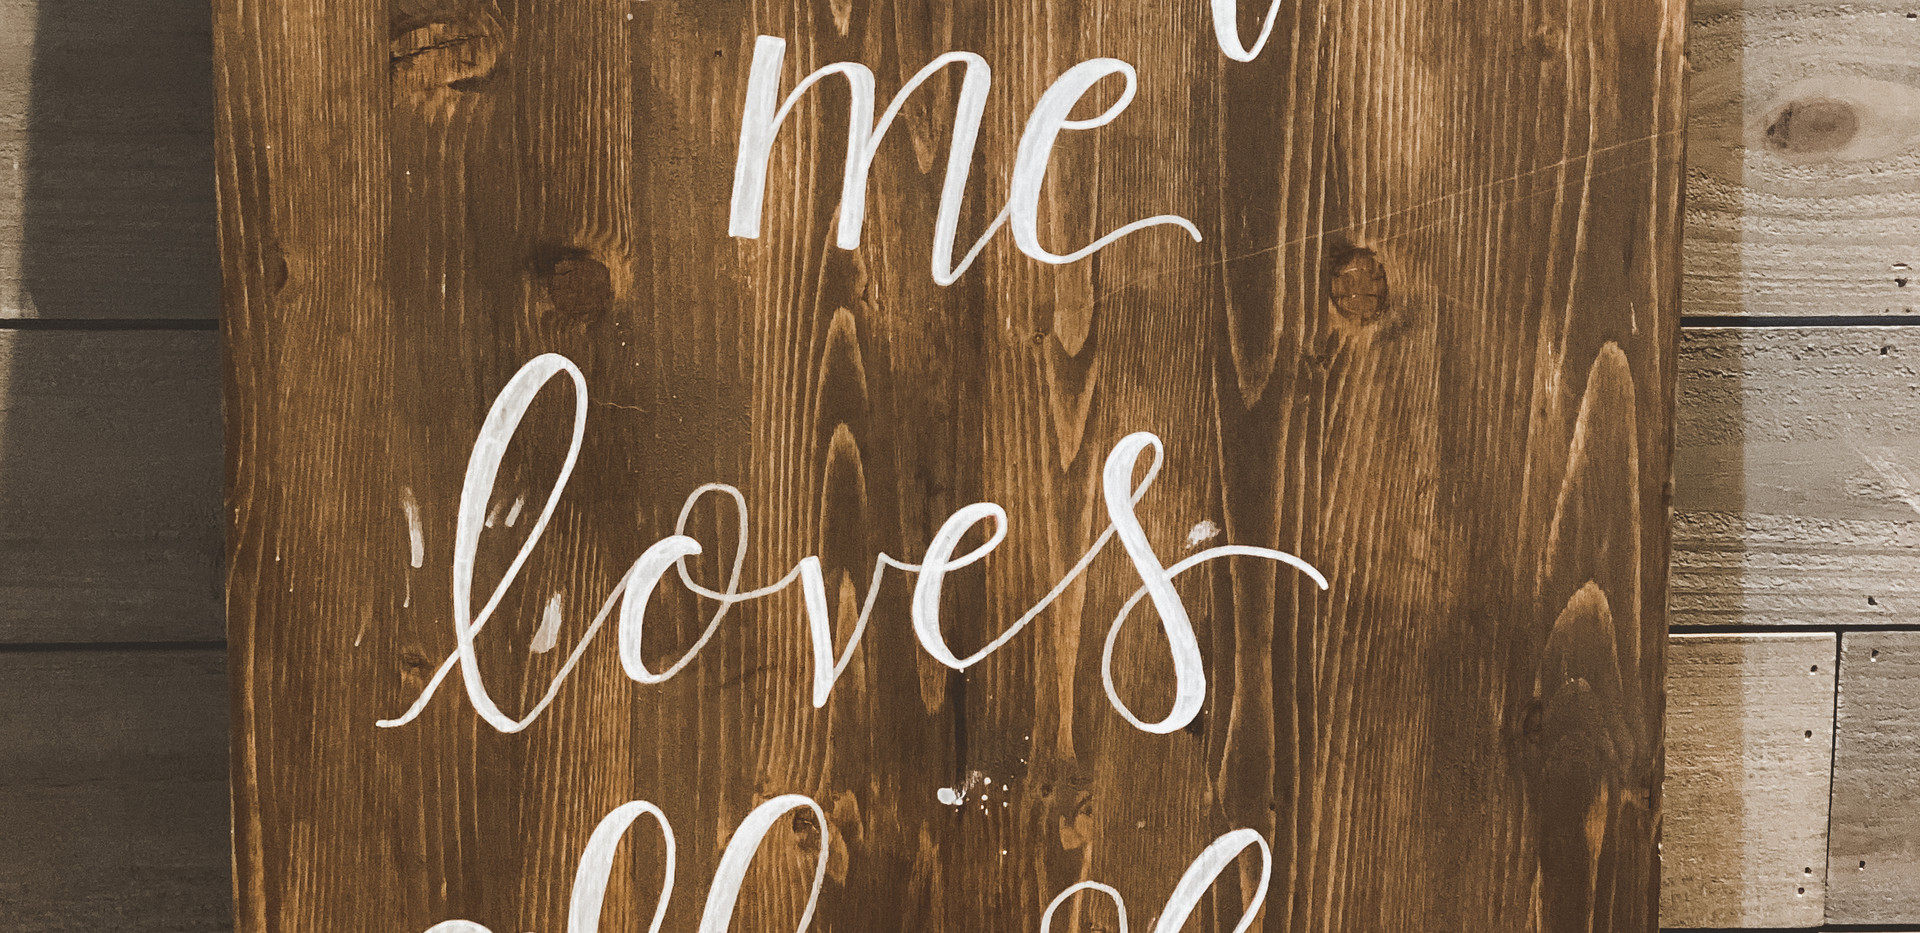 All of Me Sign.jpg